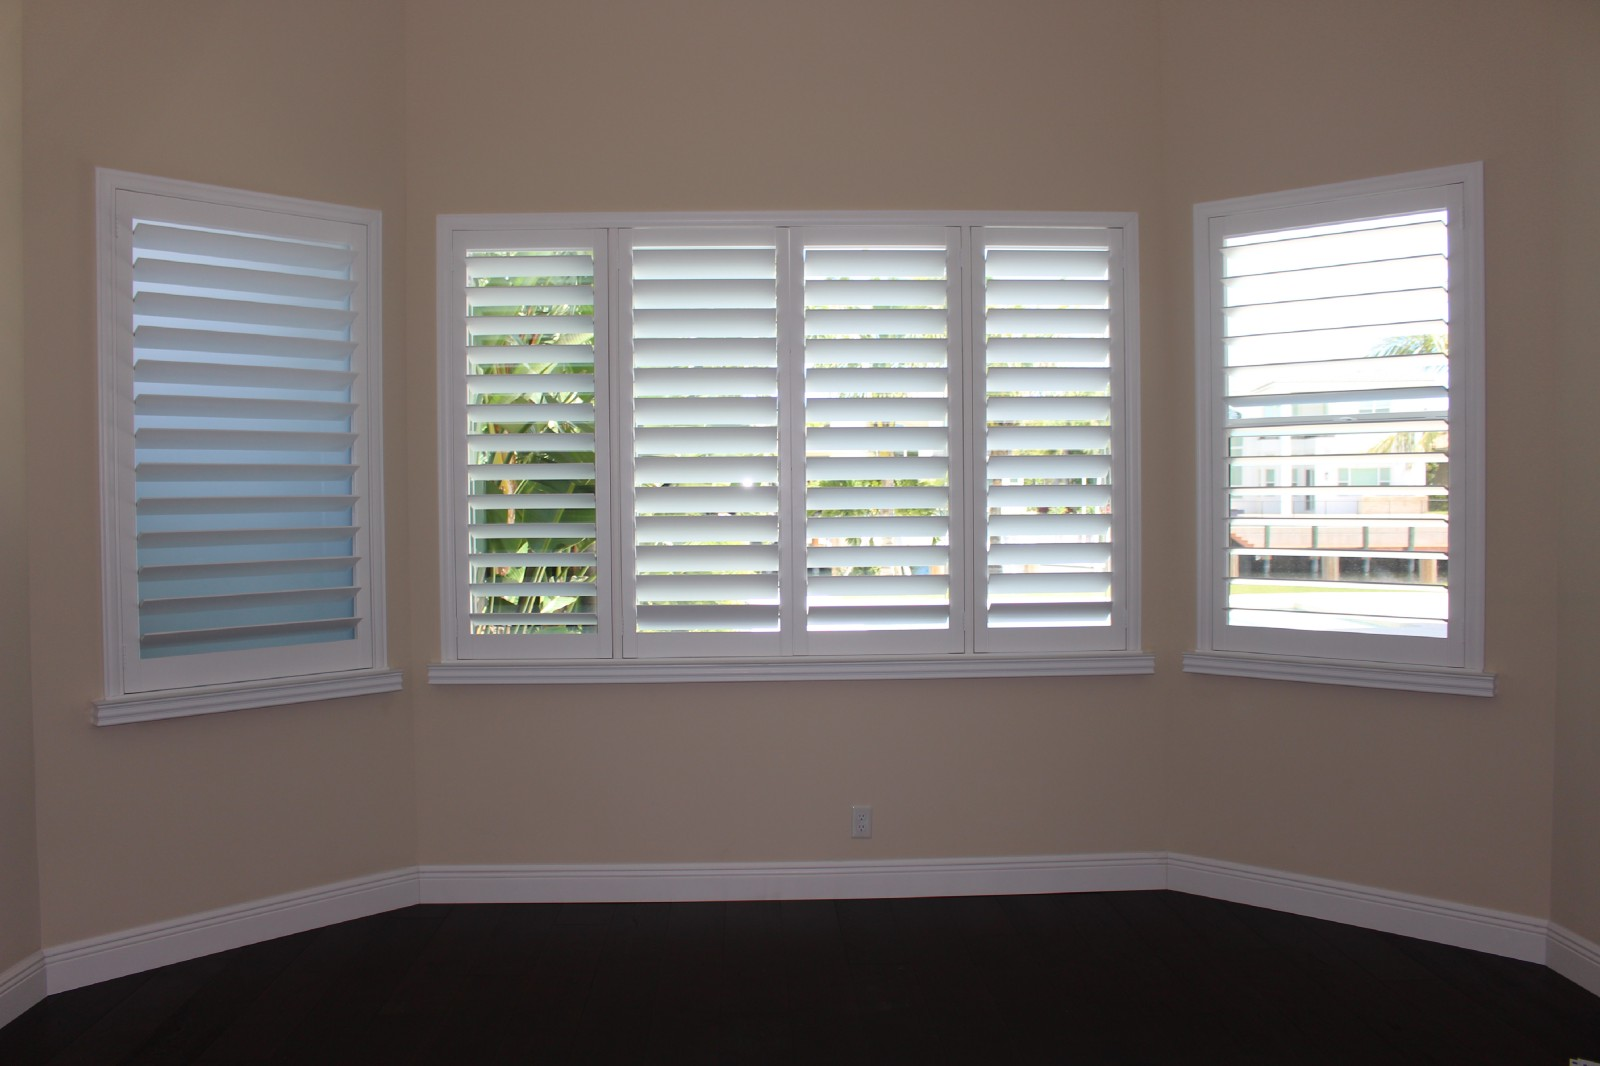 Plantation Shutters Florida Www Plantationshuttersfla In St Lucie County And The Palm Beaches